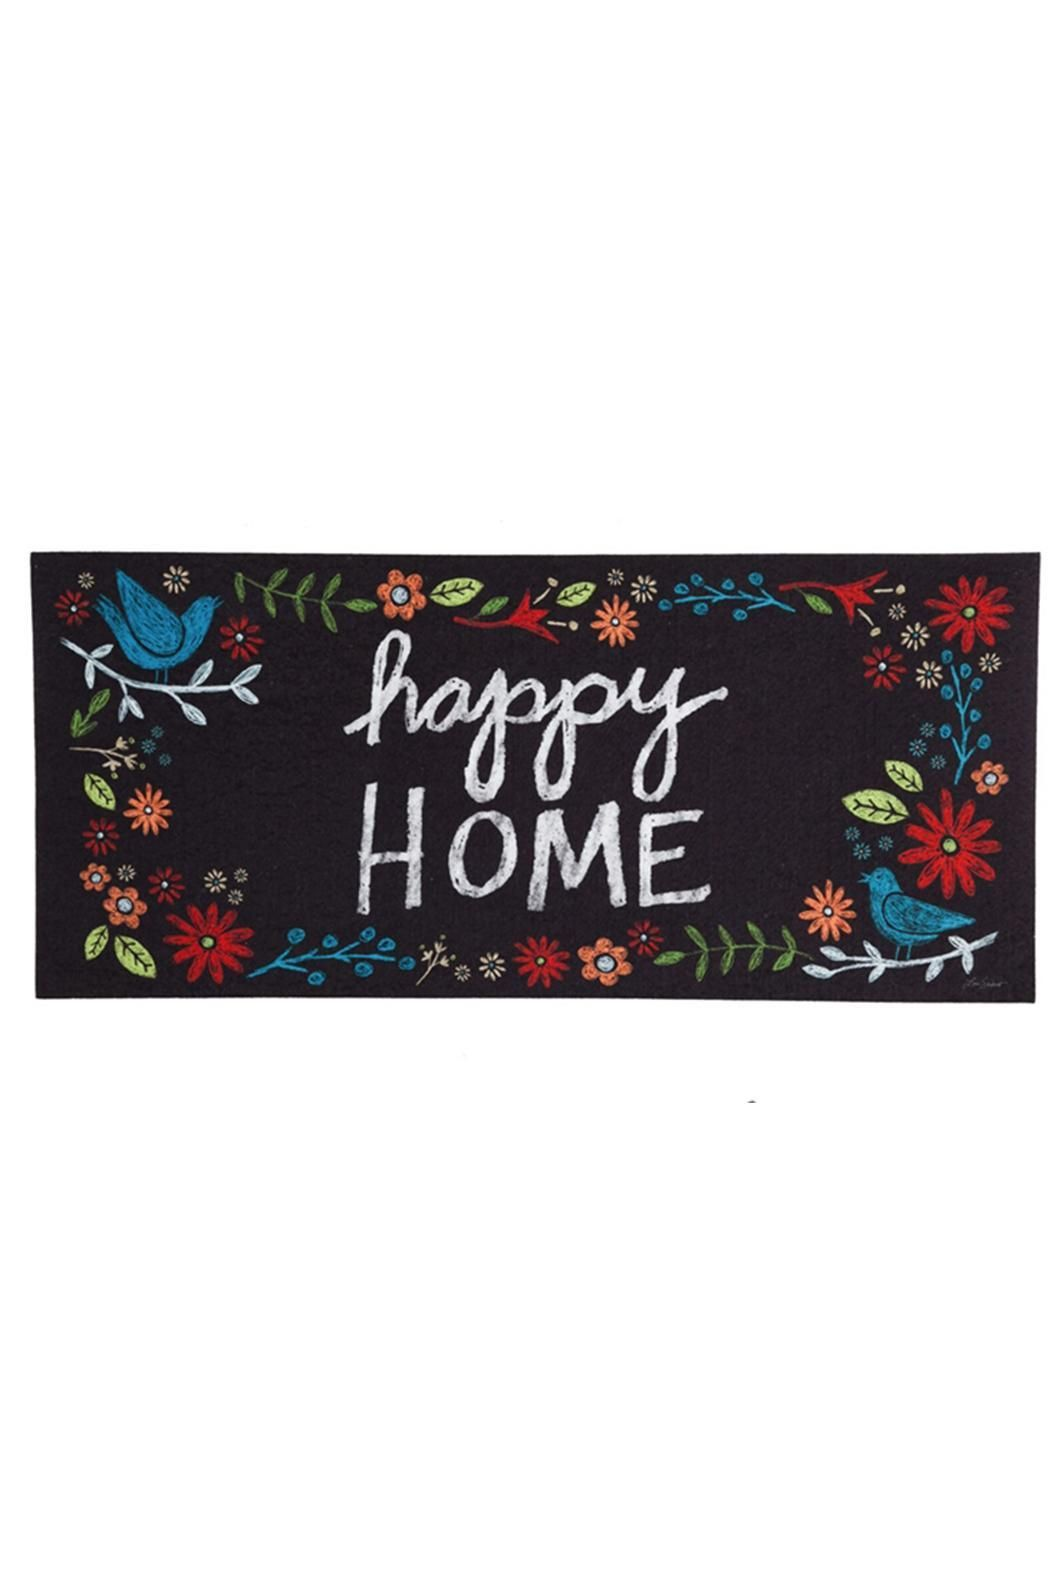 Sassafras Happy Home Mat Insert Size 10 X 22 X 0 2 Happy Home Mat By Evergreen Enterprises Home Gifts Home Decor Door Mat Evergreen Enterprises Happy